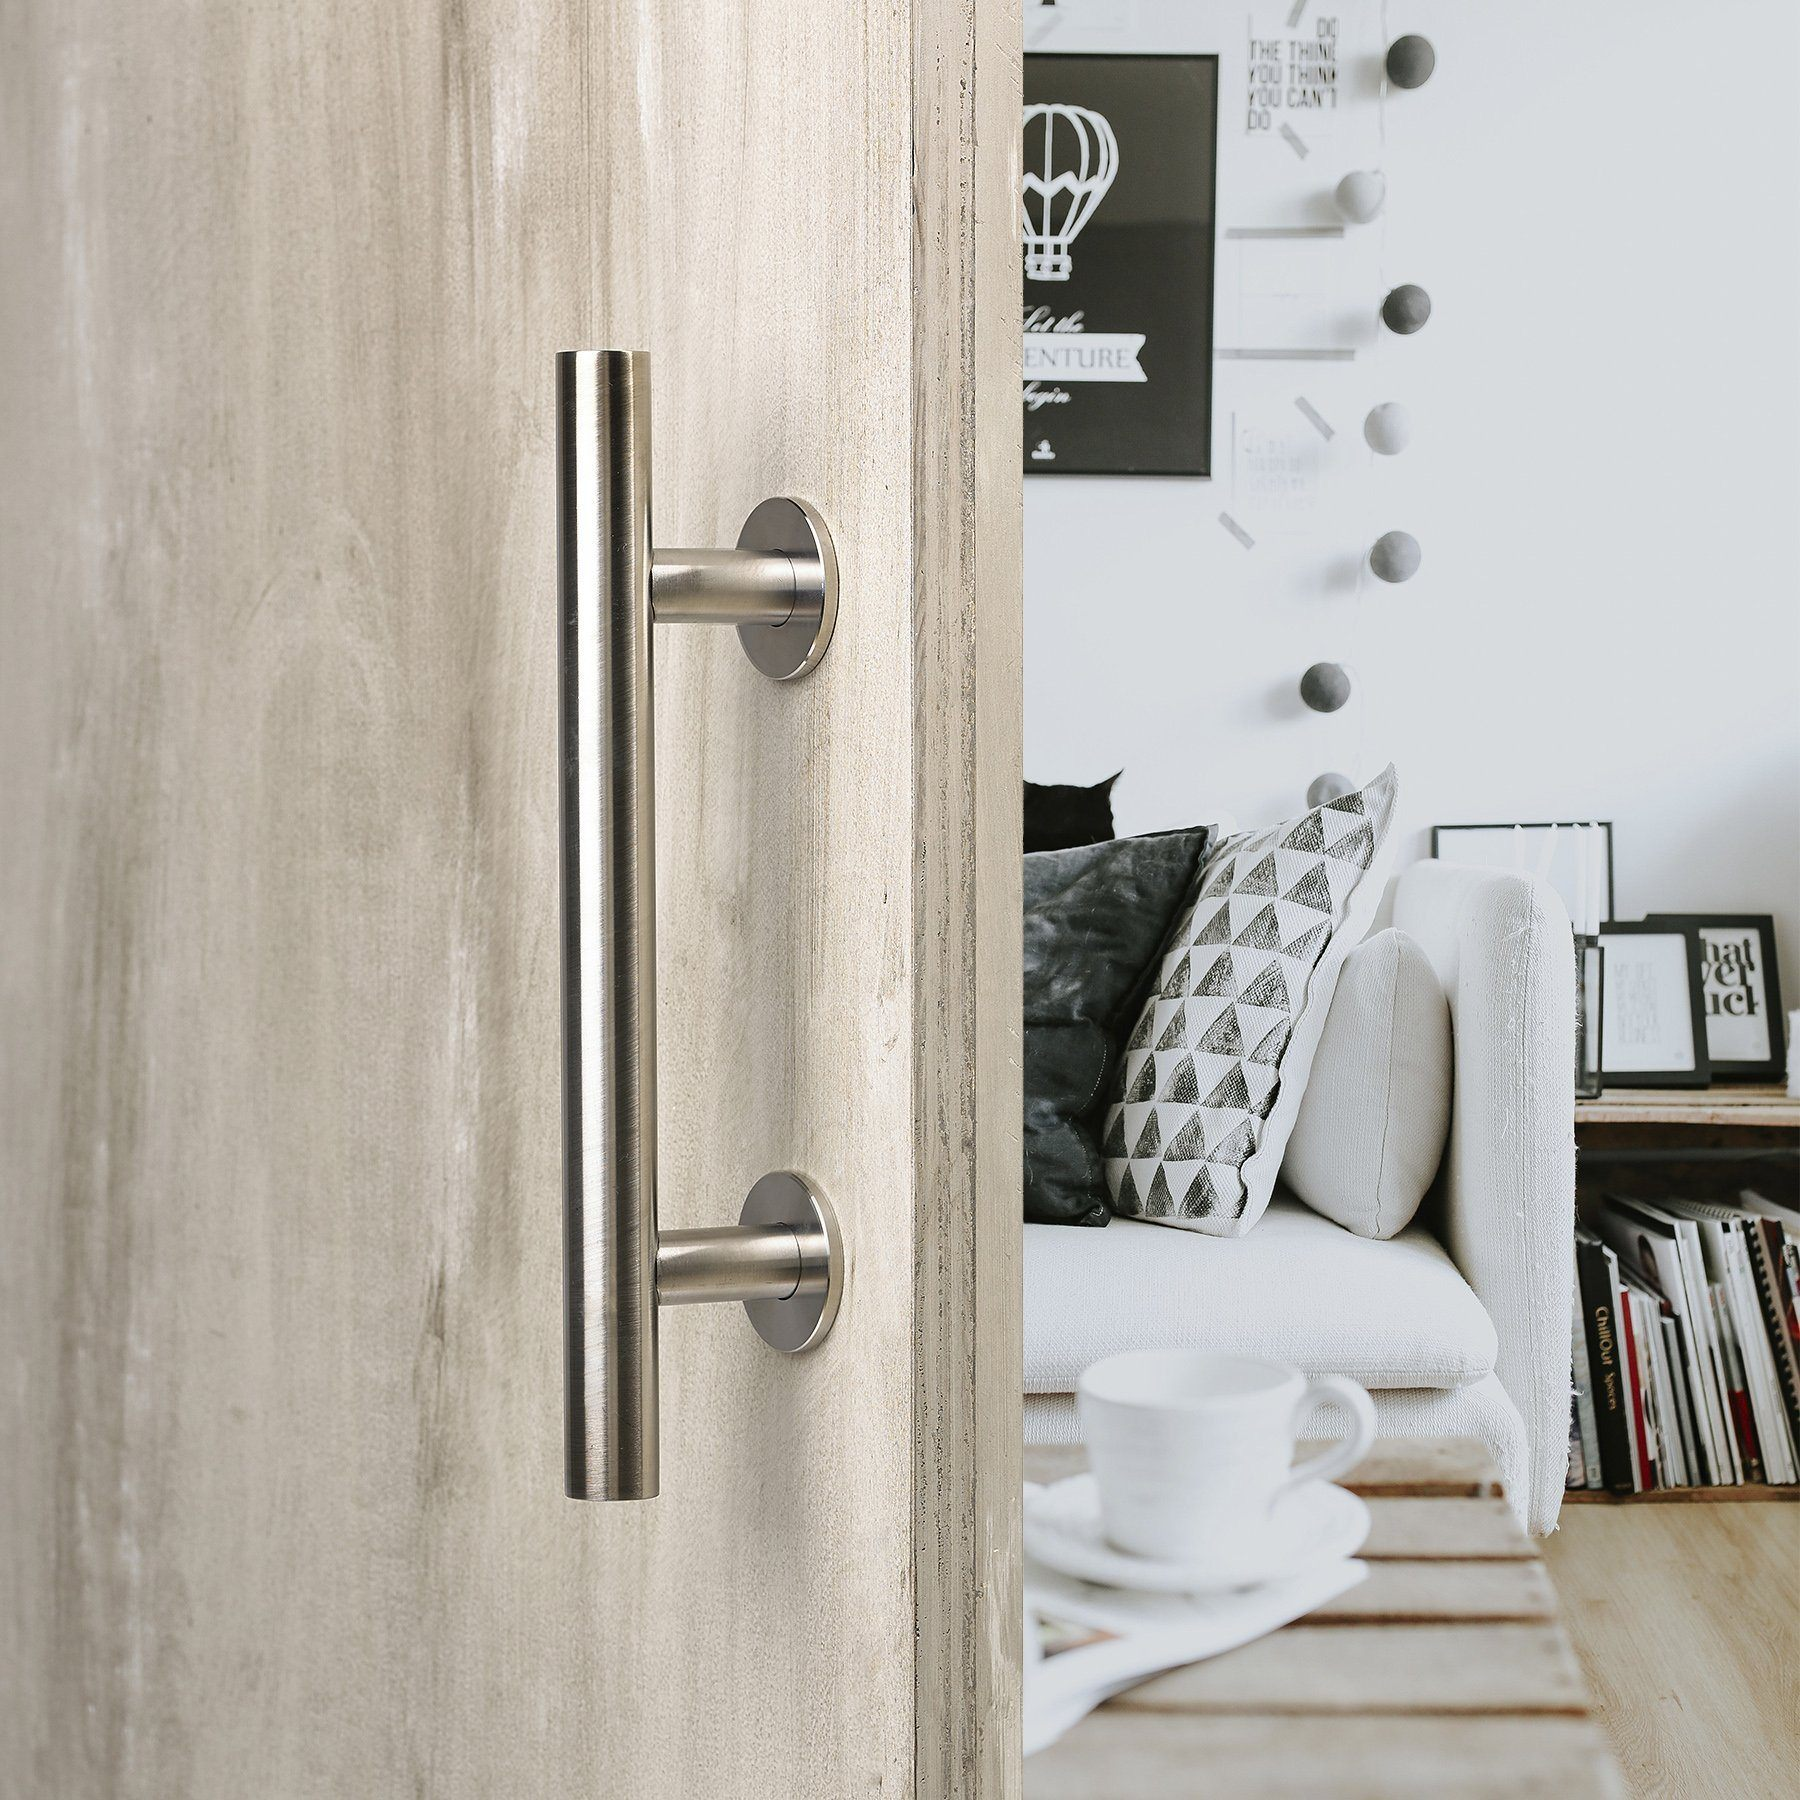 "12"" round barn door pull with flush plate \u0026 latch stainless steel"